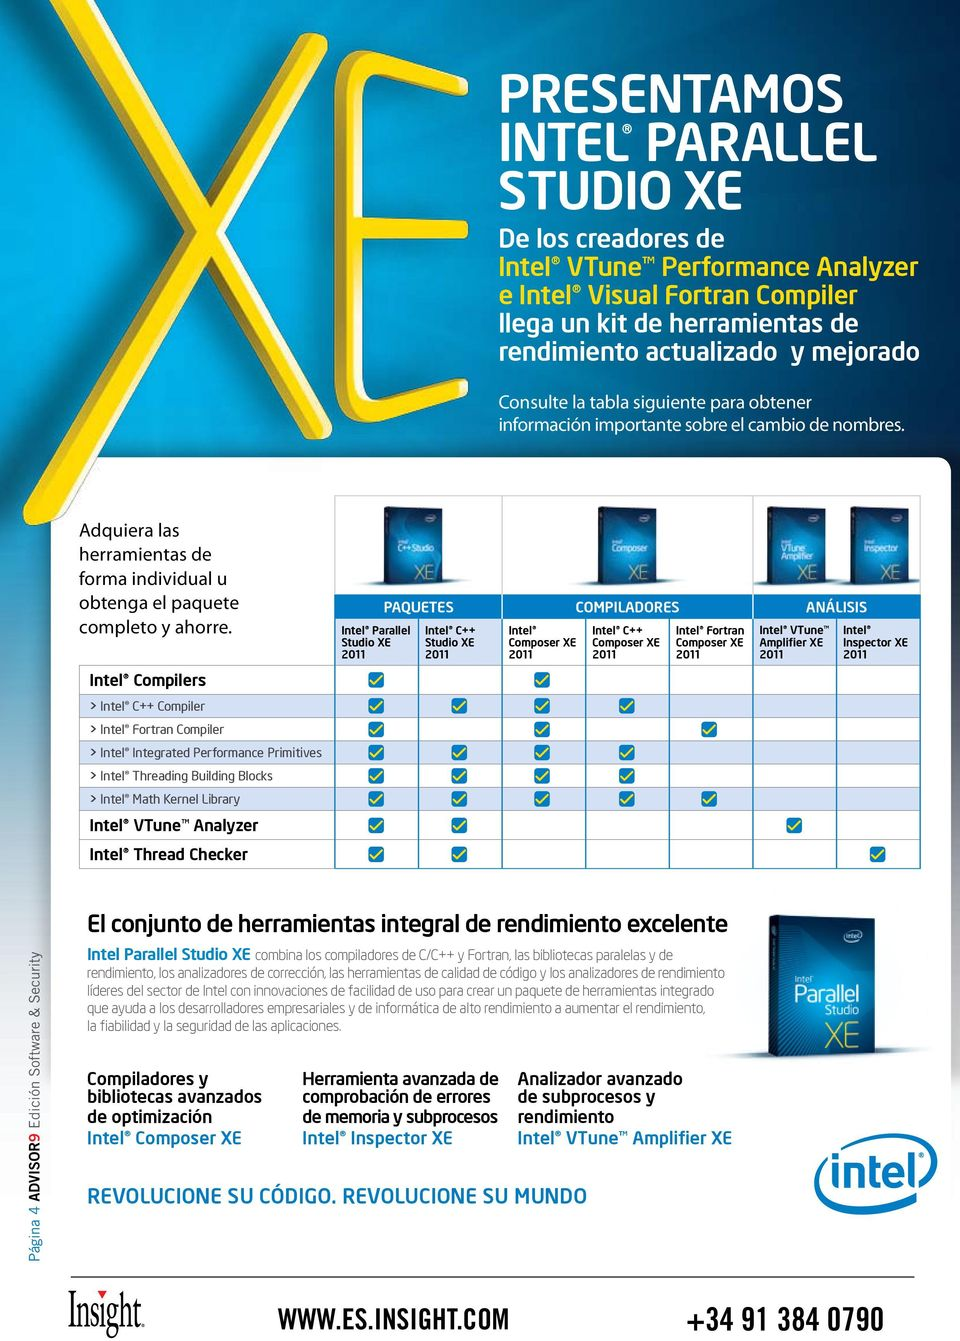 PAQUETES Intel Parallel Studio XE 2011 Intel C++ Studio XE 2011 COMPILADORES Intel Composer XE 2011 Intel C++ Composer XE 2011 ANÁLISIS Intel Fortran Composer XE 2011 Intel VTune Amplifier XE 2011